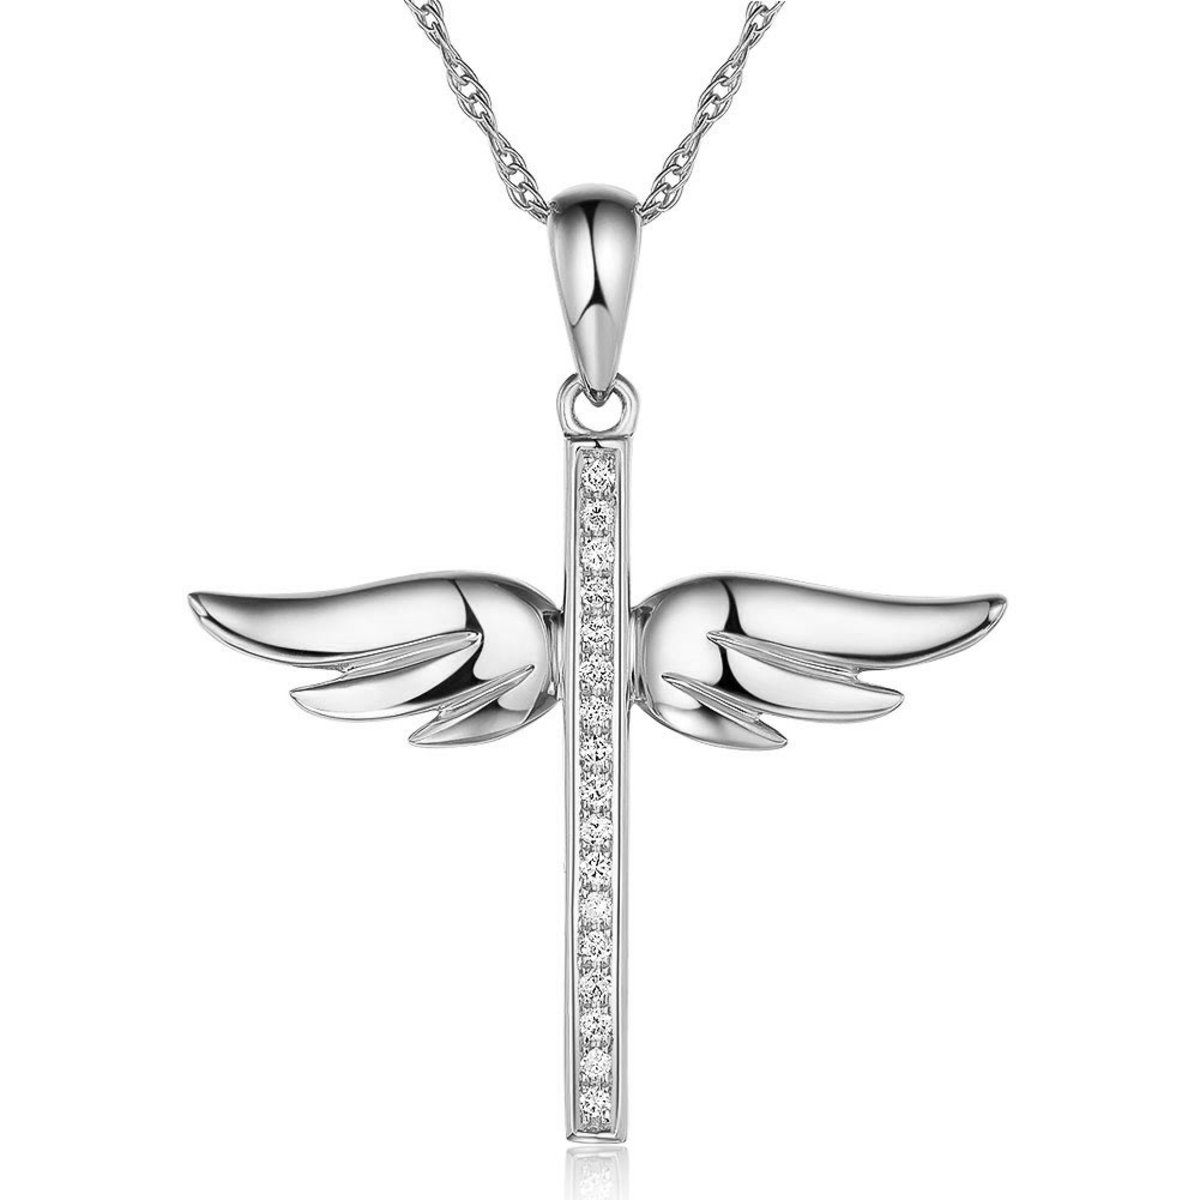 14K/ 585 White Gold Angle Wing Cross Pendant with Chain 0.08 Carat Natural Diamond